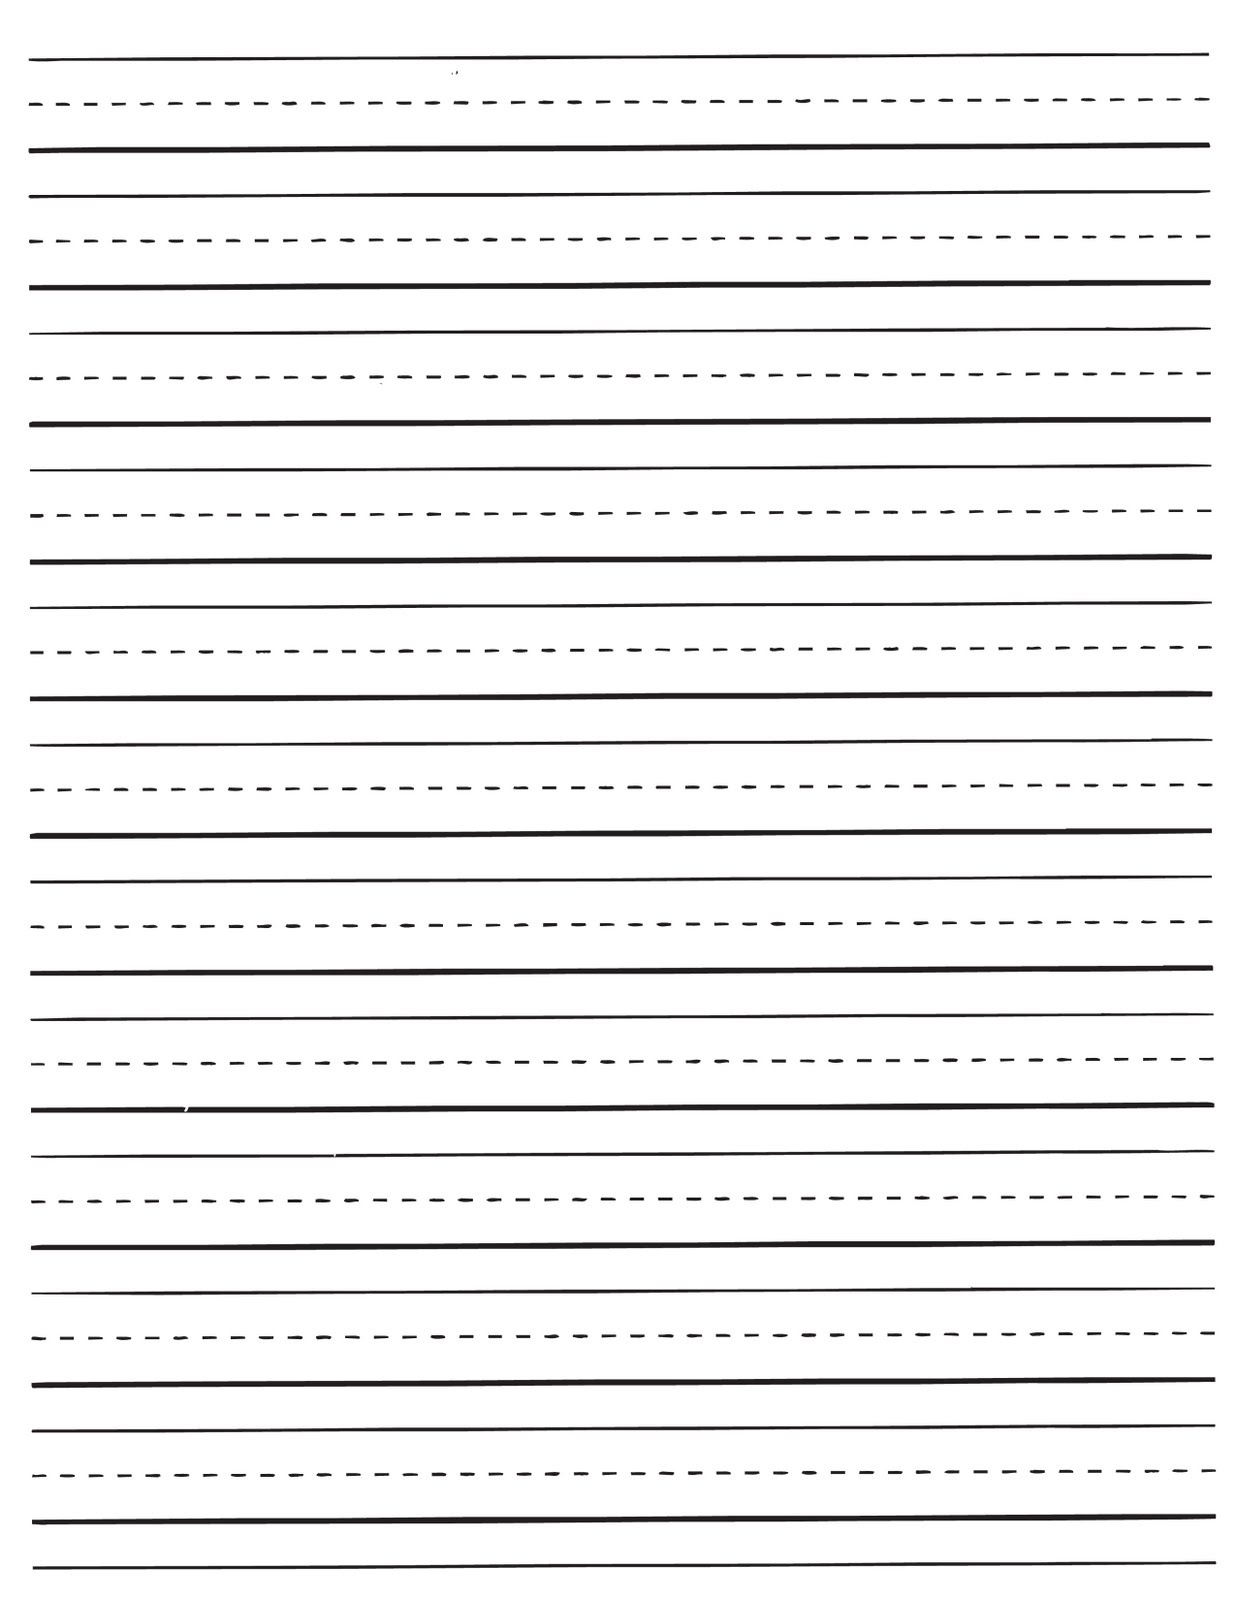 Printable Lined Paper For Kids | World Of Label - Free Printable Lined Writing Paper